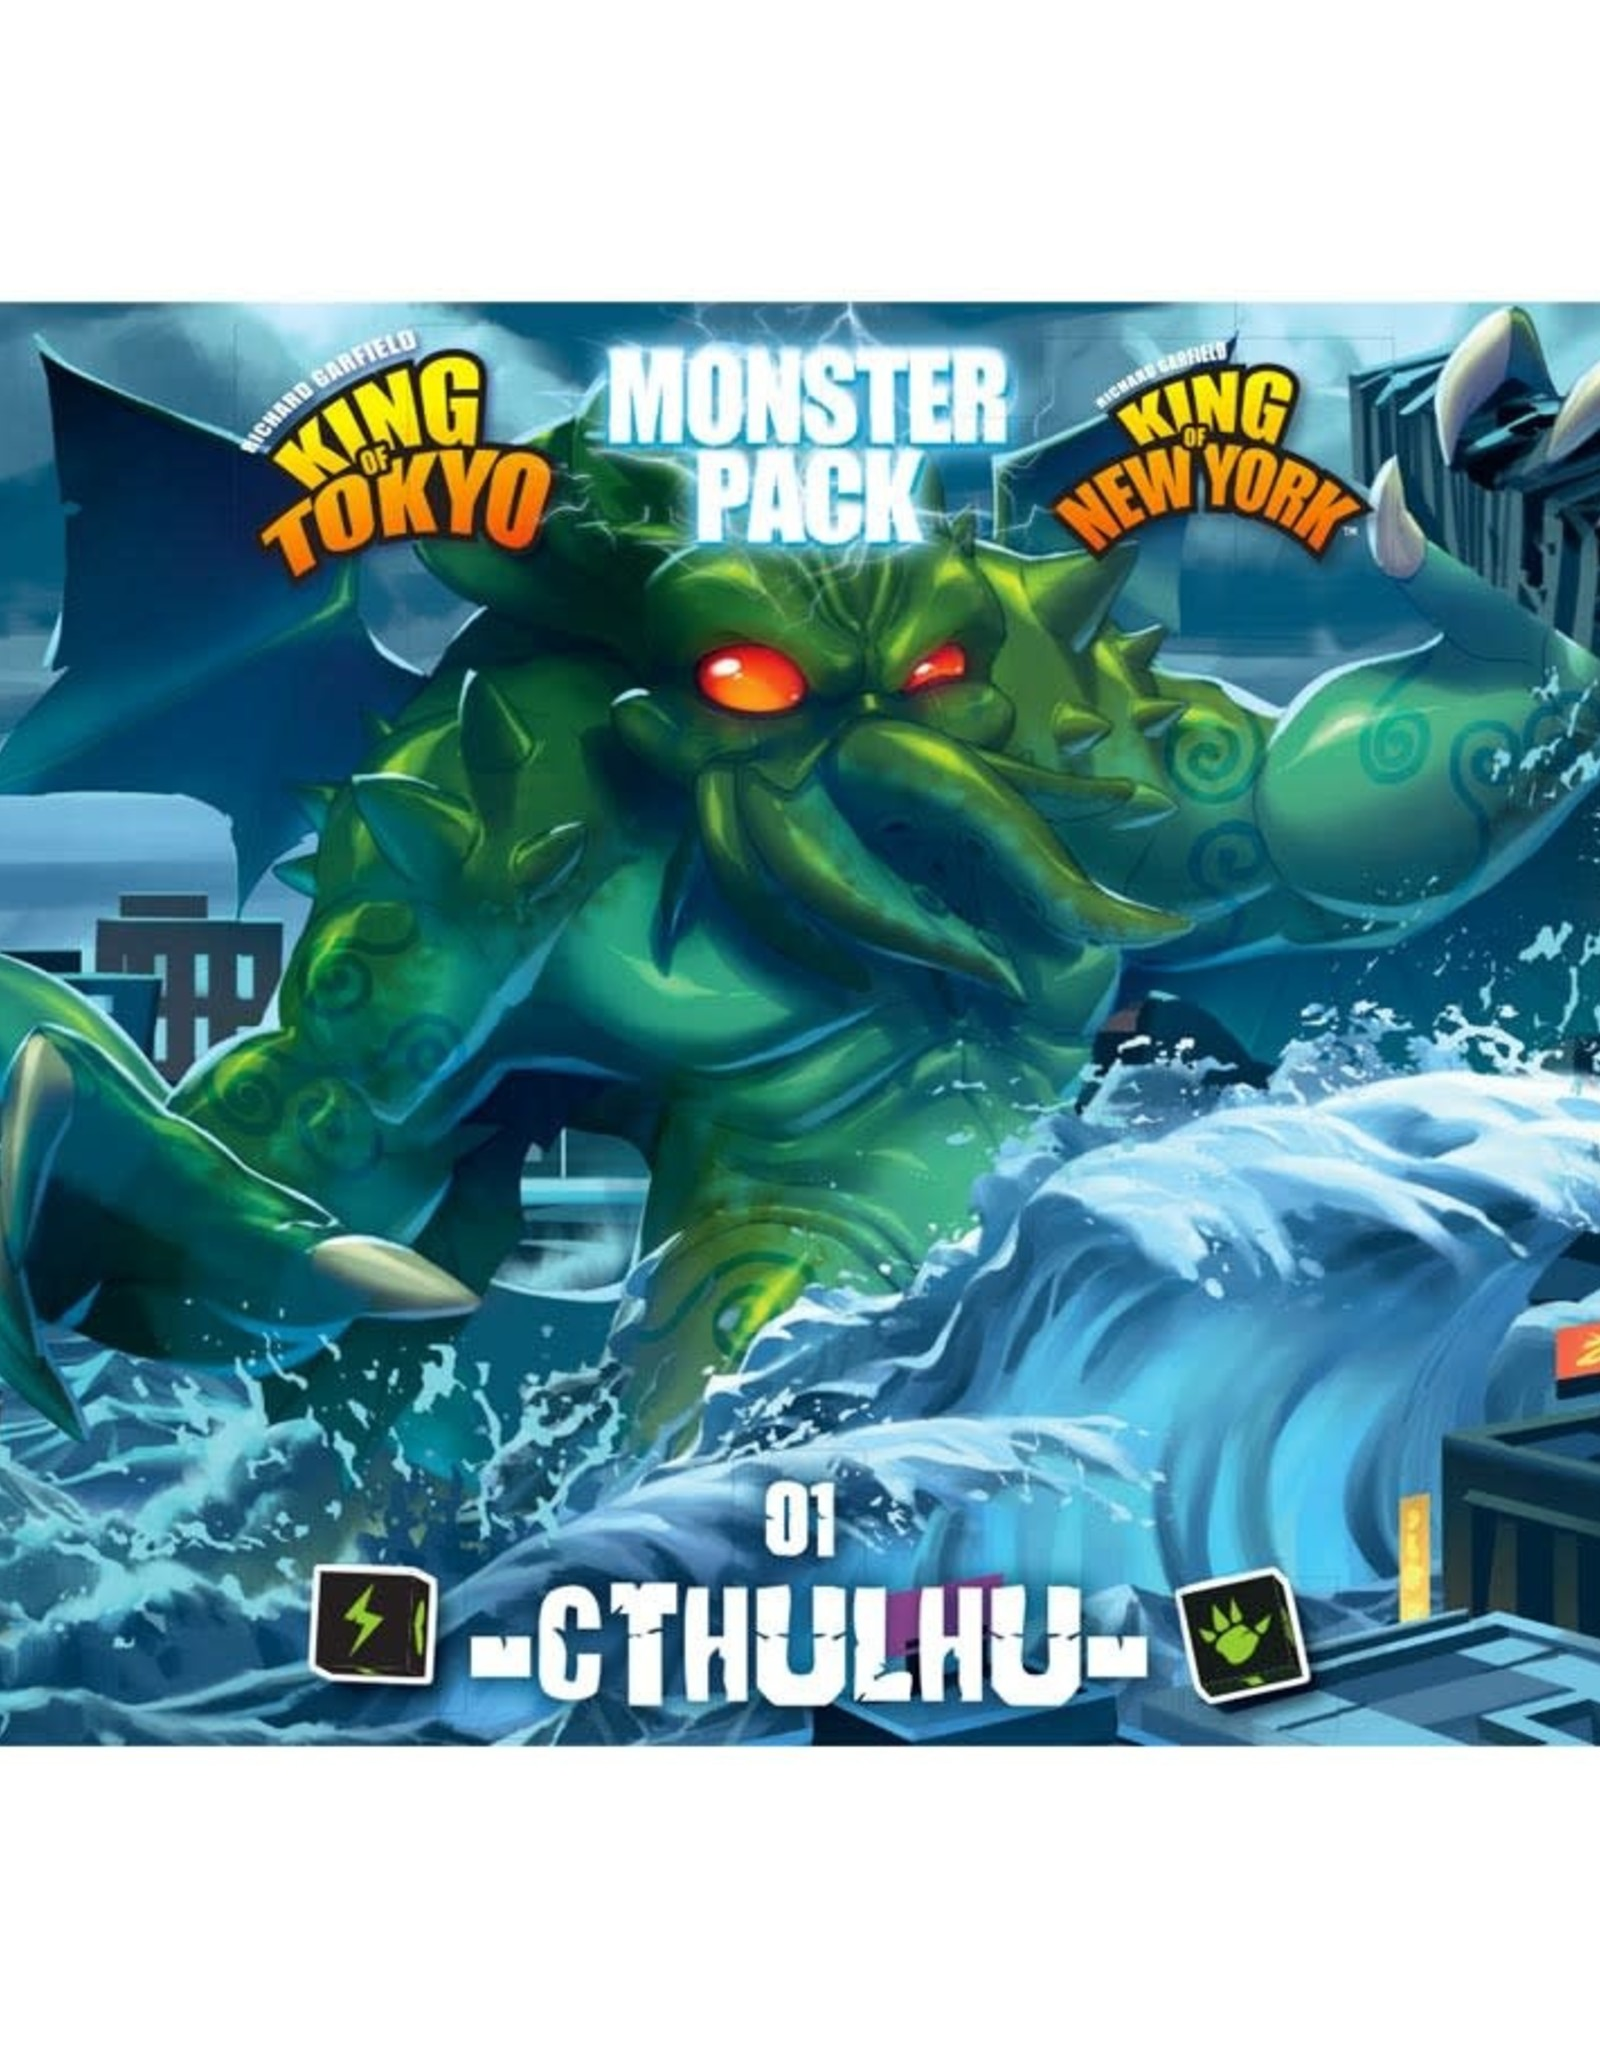 Iello King of Tokyo: Monster Pack #1 Cthulhu